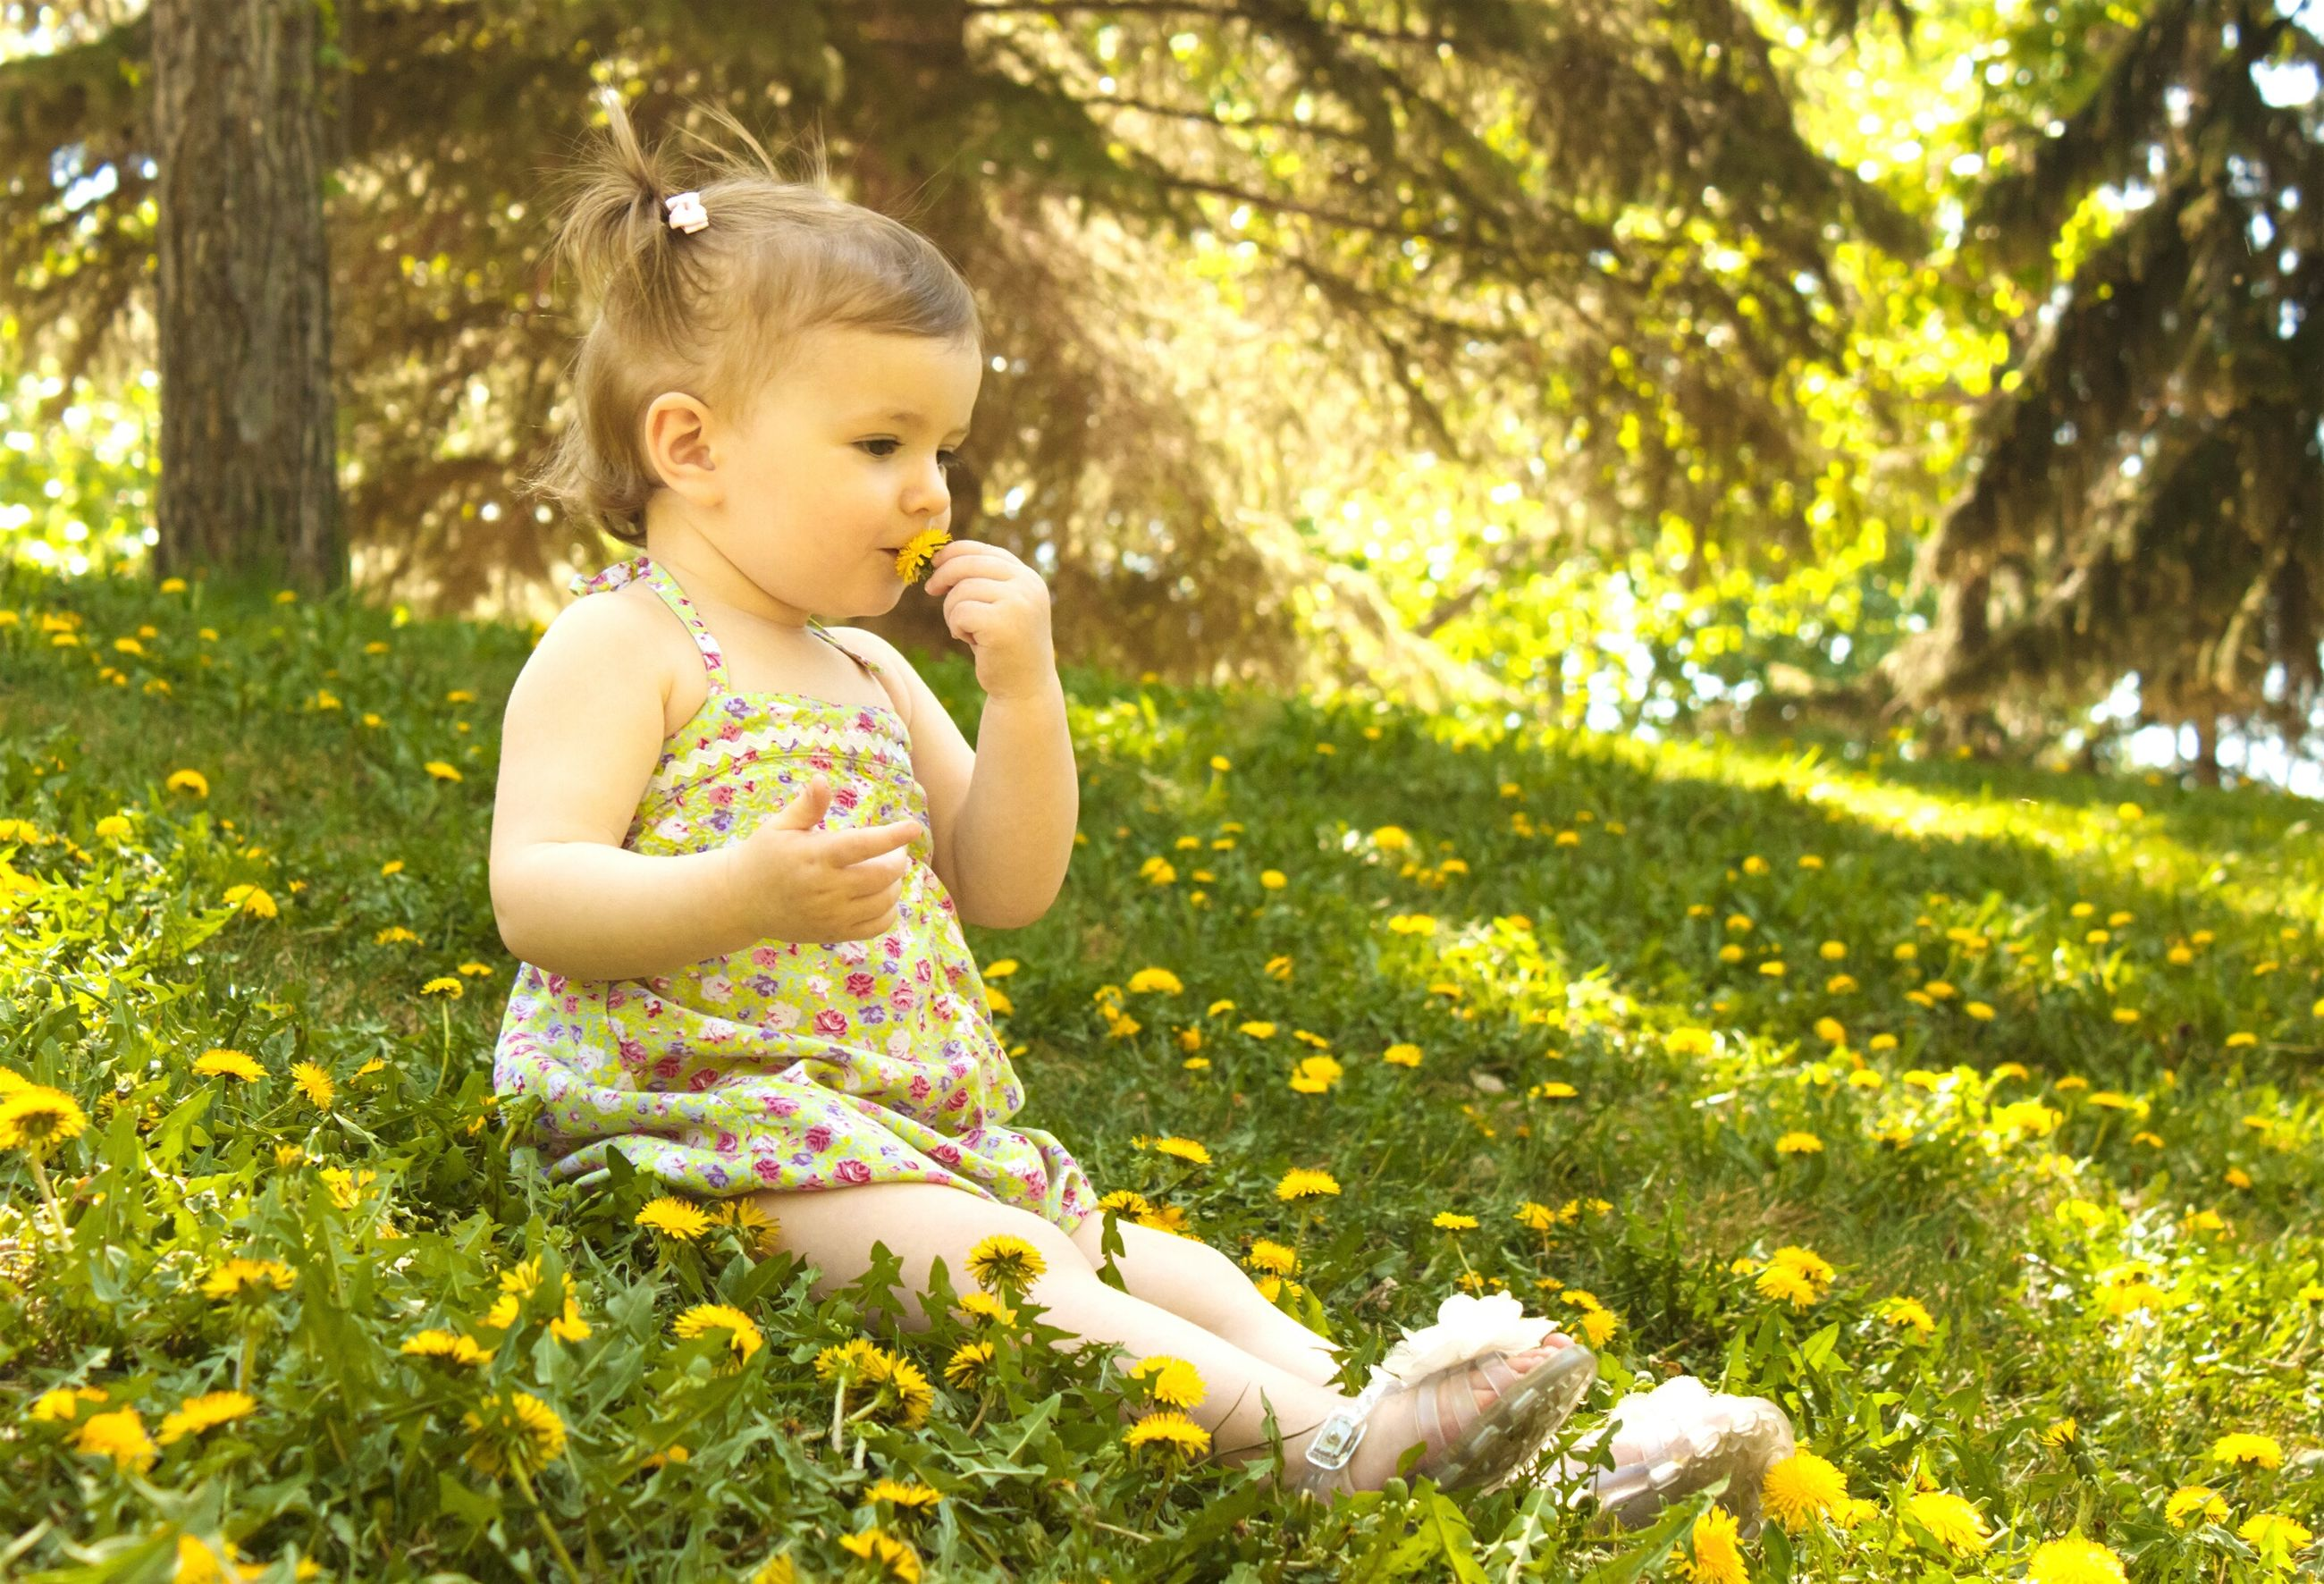 childhood, cute, elementary age, leisure activity, flower, innocence, lifestyles, focus on foreground, person, fragility, holding, casual clothing, nature, day, toddler, field, outdoors, leaves, growth, formal garden